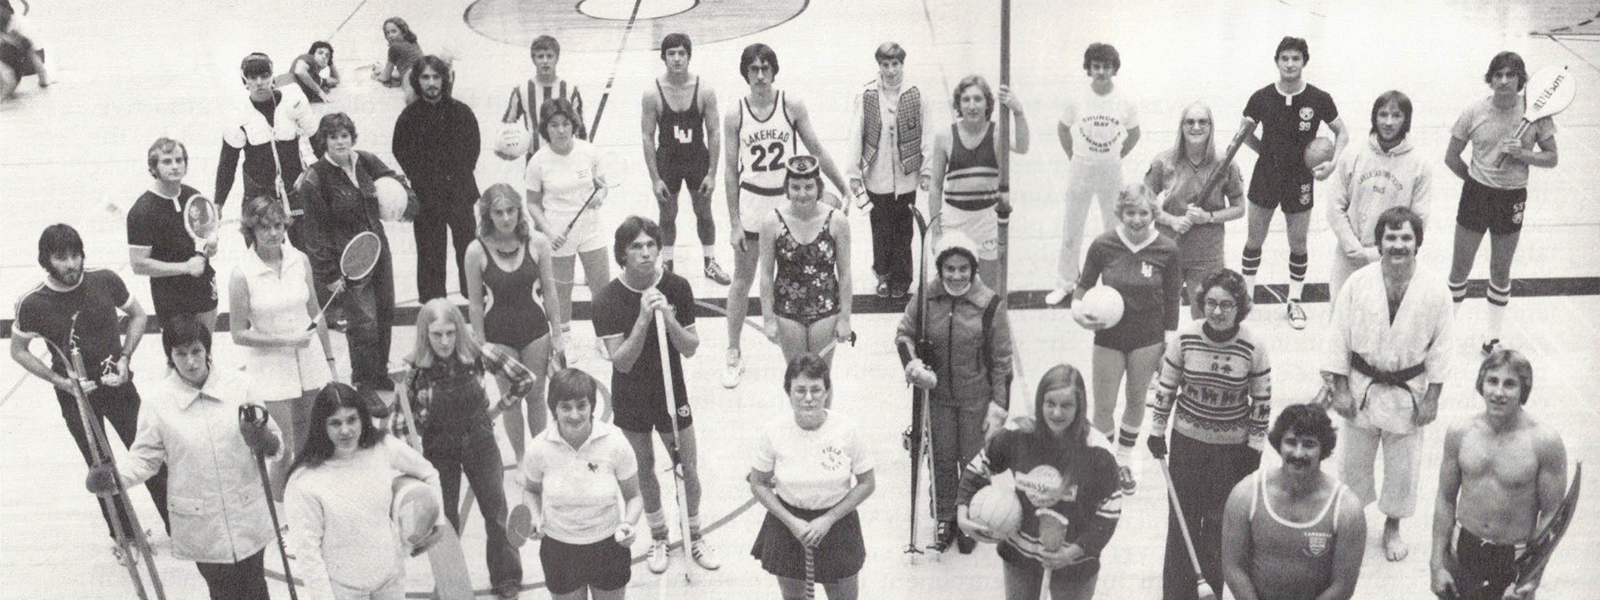 Pictured are students in the Fieldhouse representing the different sporting activities offered by the program in the 1970s.